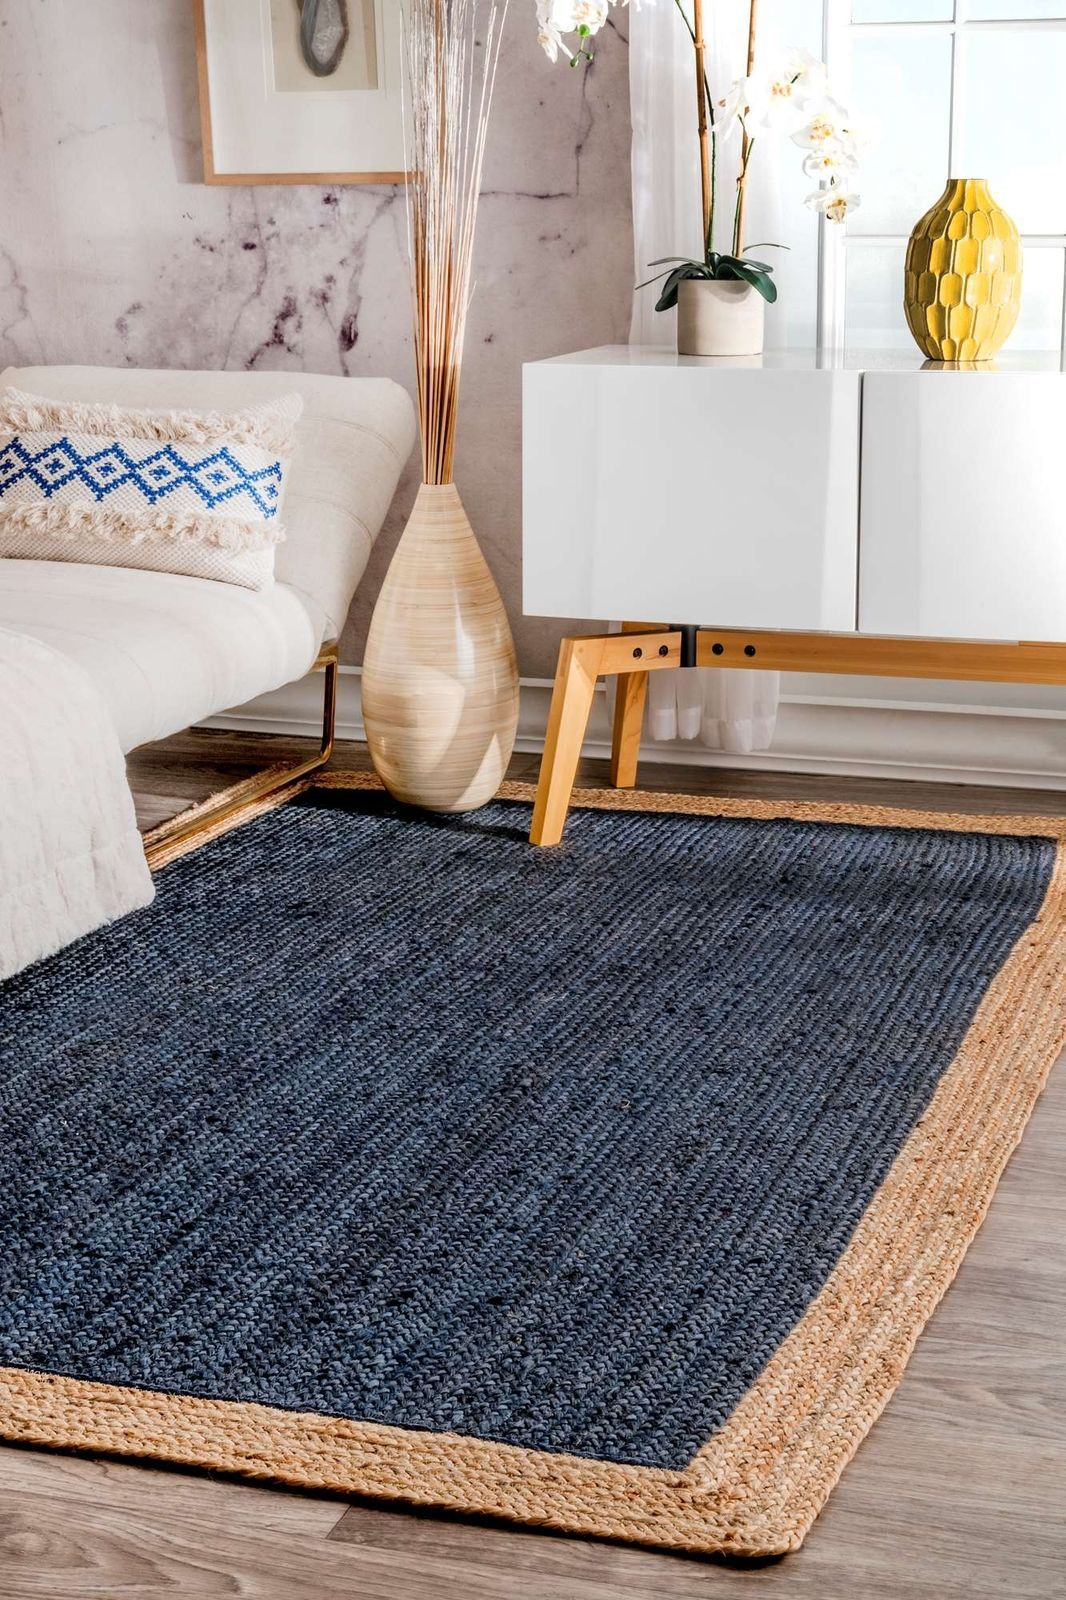 Nuloom Contemporary Modern Simple Bordered Natural Jute Area Rug In Navy Blue Ebay